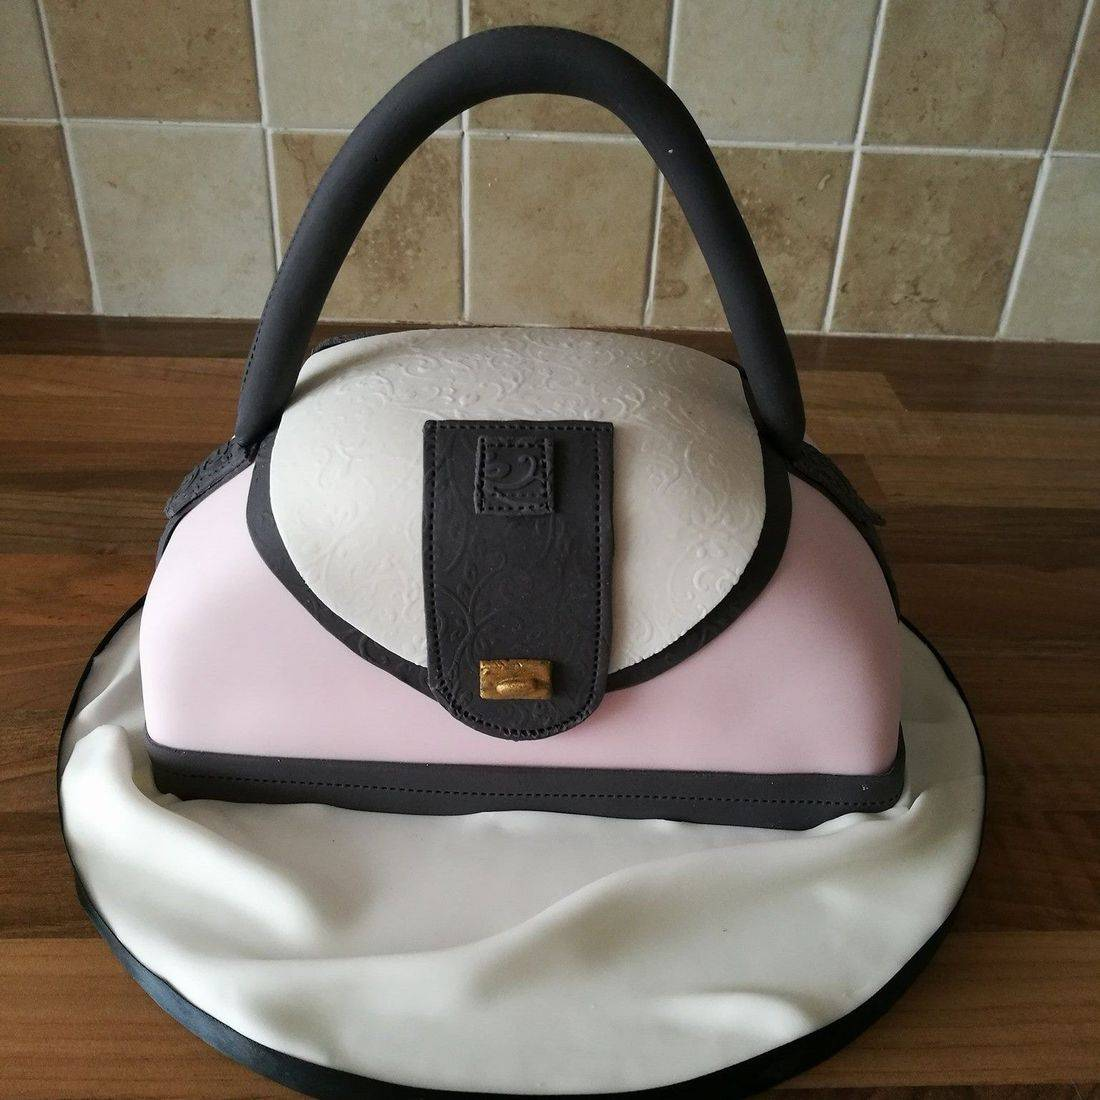 Handbag Novelty Cake